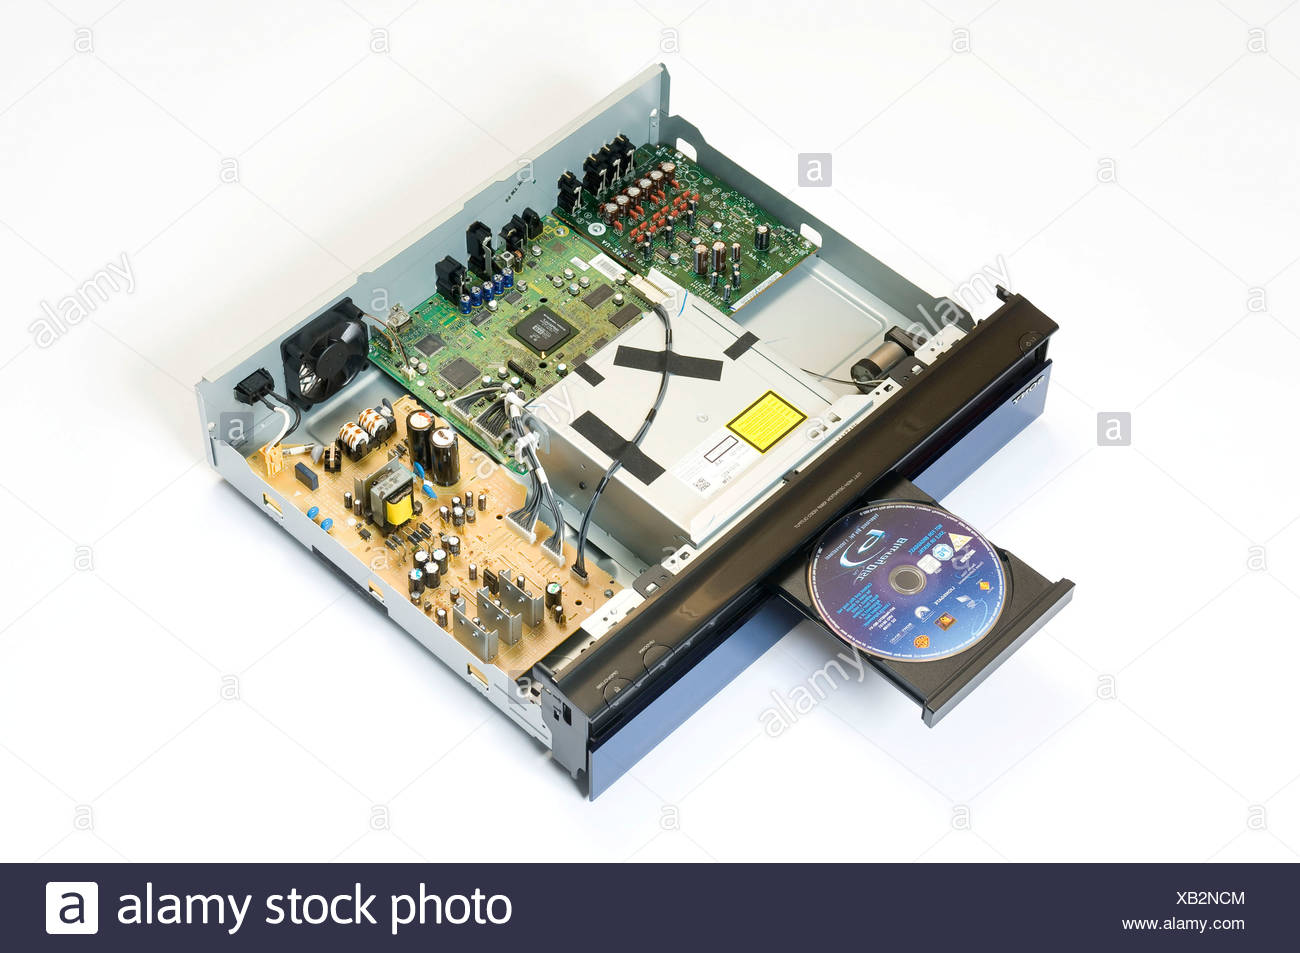 Sony DVD Blu-ray Player - Stock Image